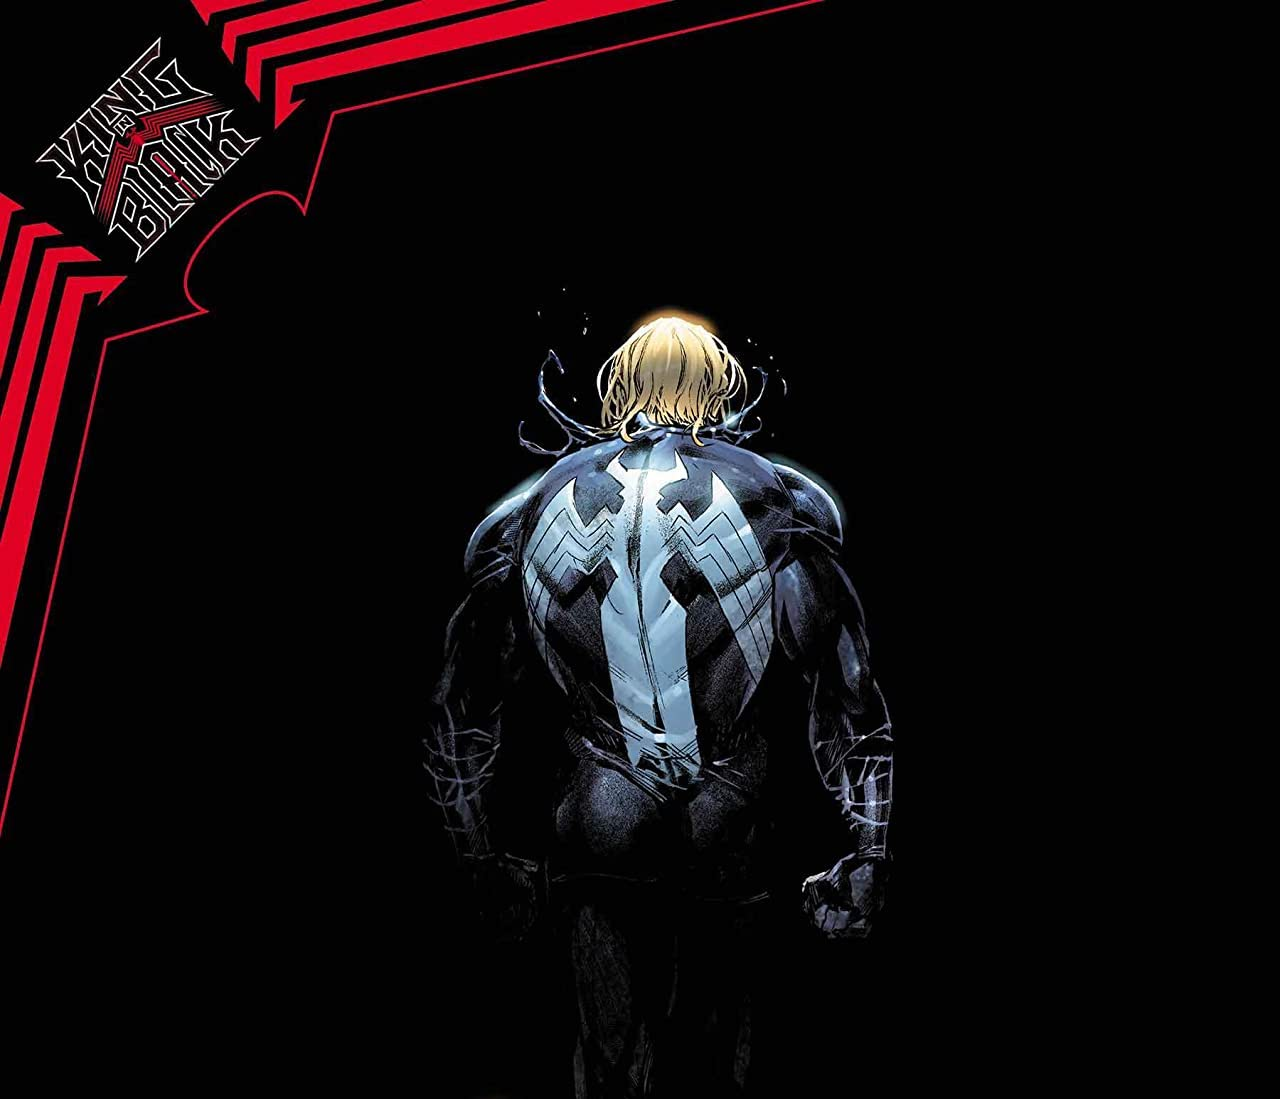 'Venom' #34 explores what it means to die when wearing a Symbiote